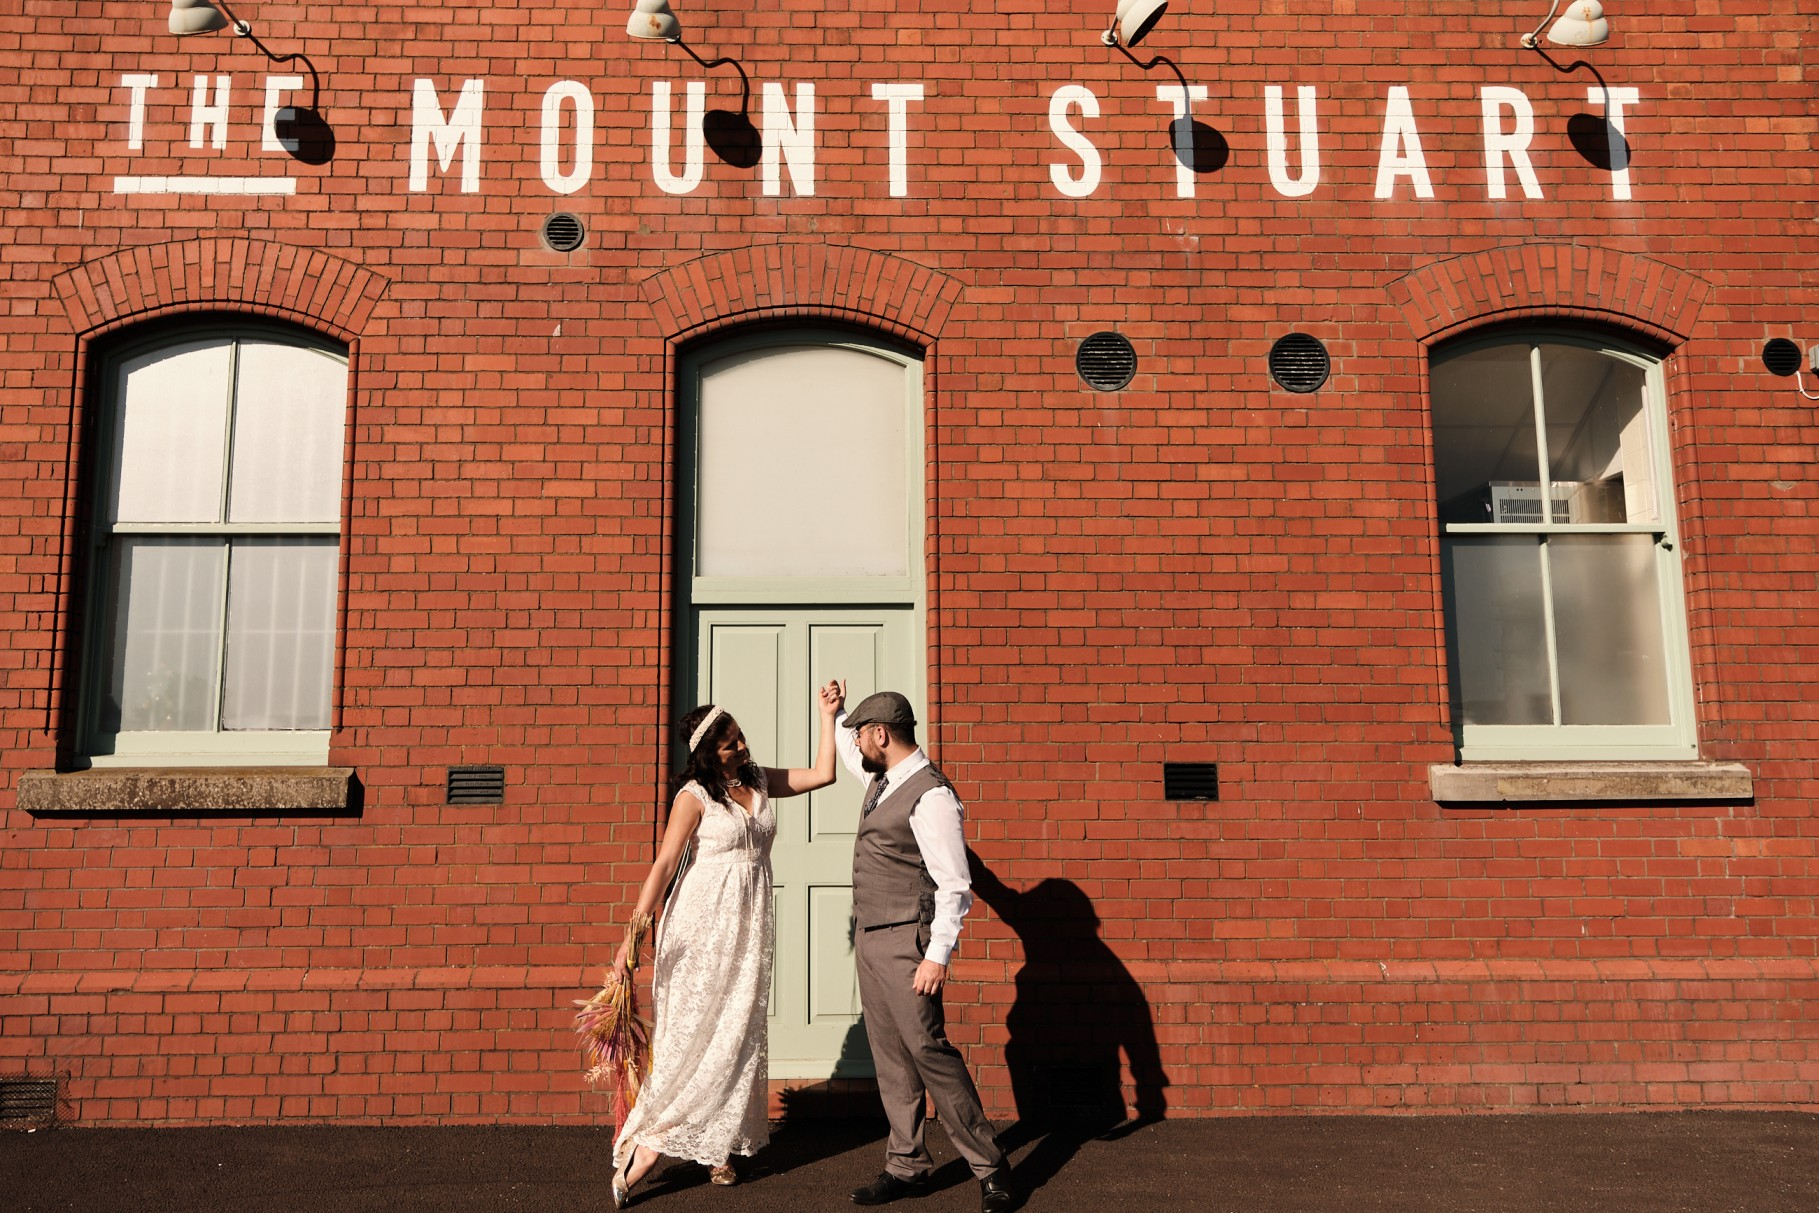 city elopement- cardiff bay wedding- wales elopement- urban elopement - cardiff wedding - colourful summer wedding- the mount stuart